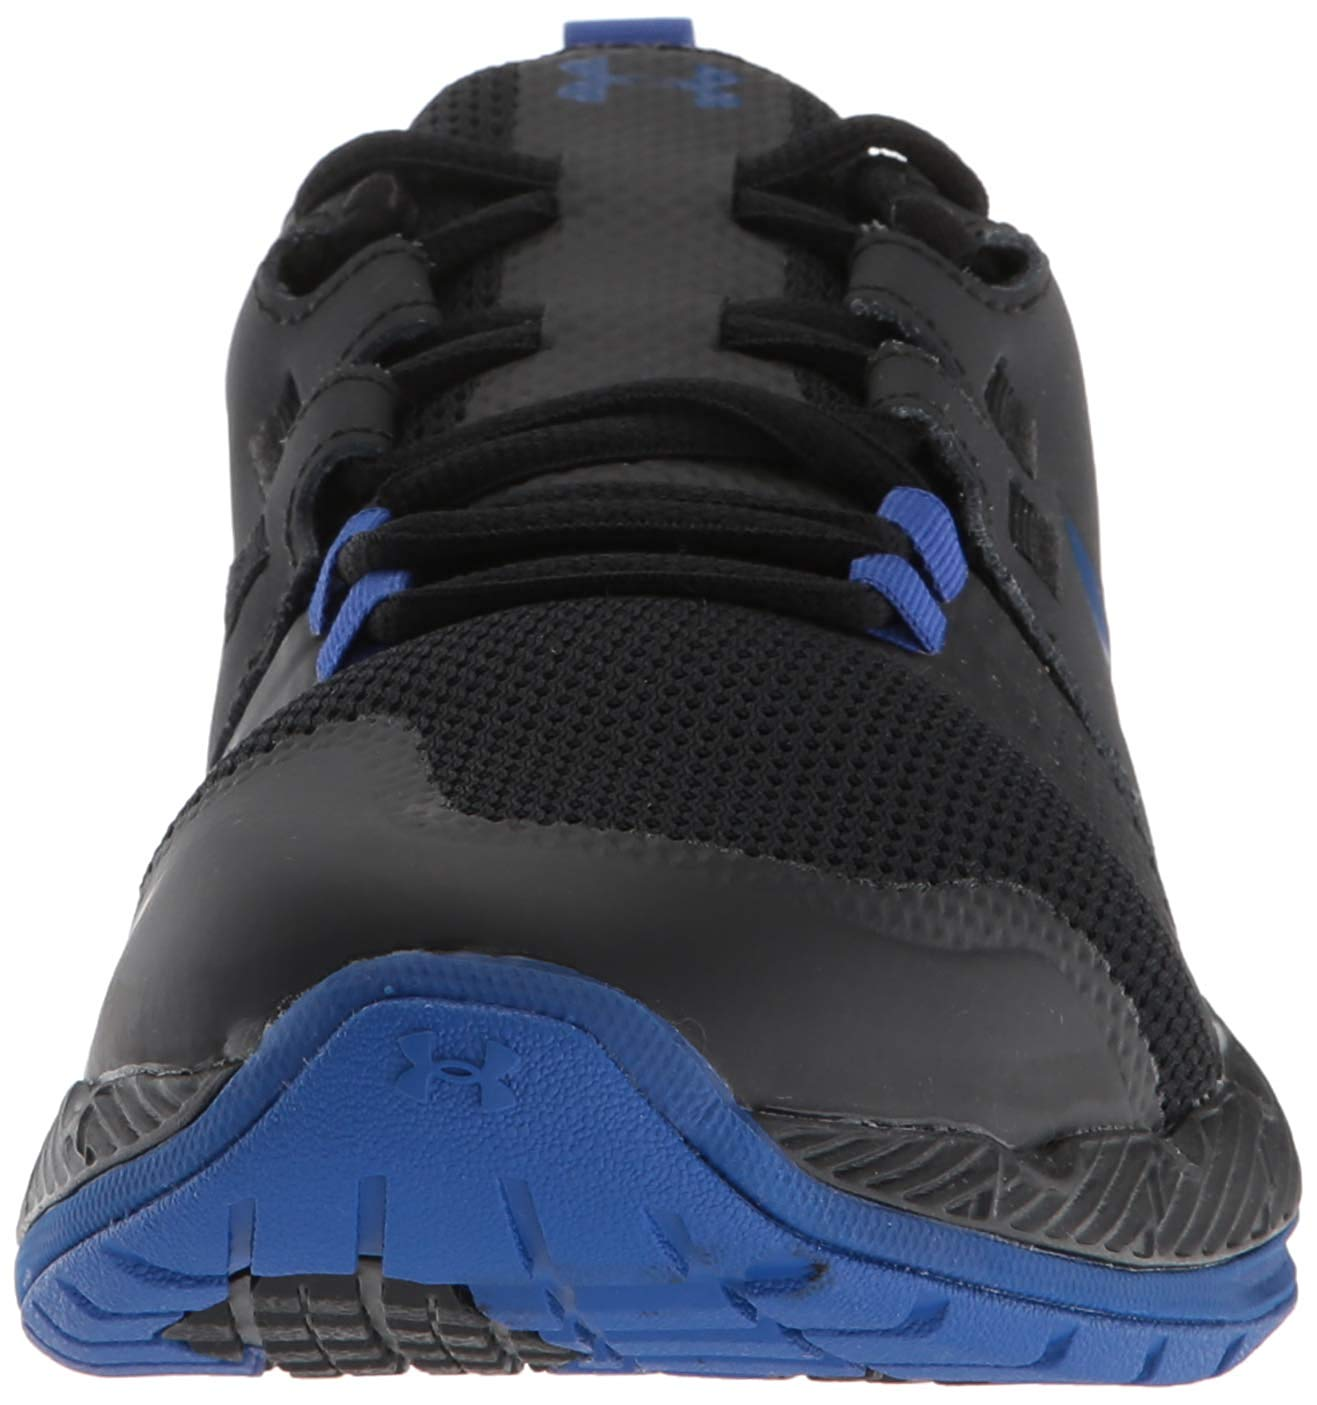 low priced 8e697 c9573 Details about Under Armour Men's Commit Tr X Nm Sneaker, Black (003)/Royal,  Size 11.0 UTgt